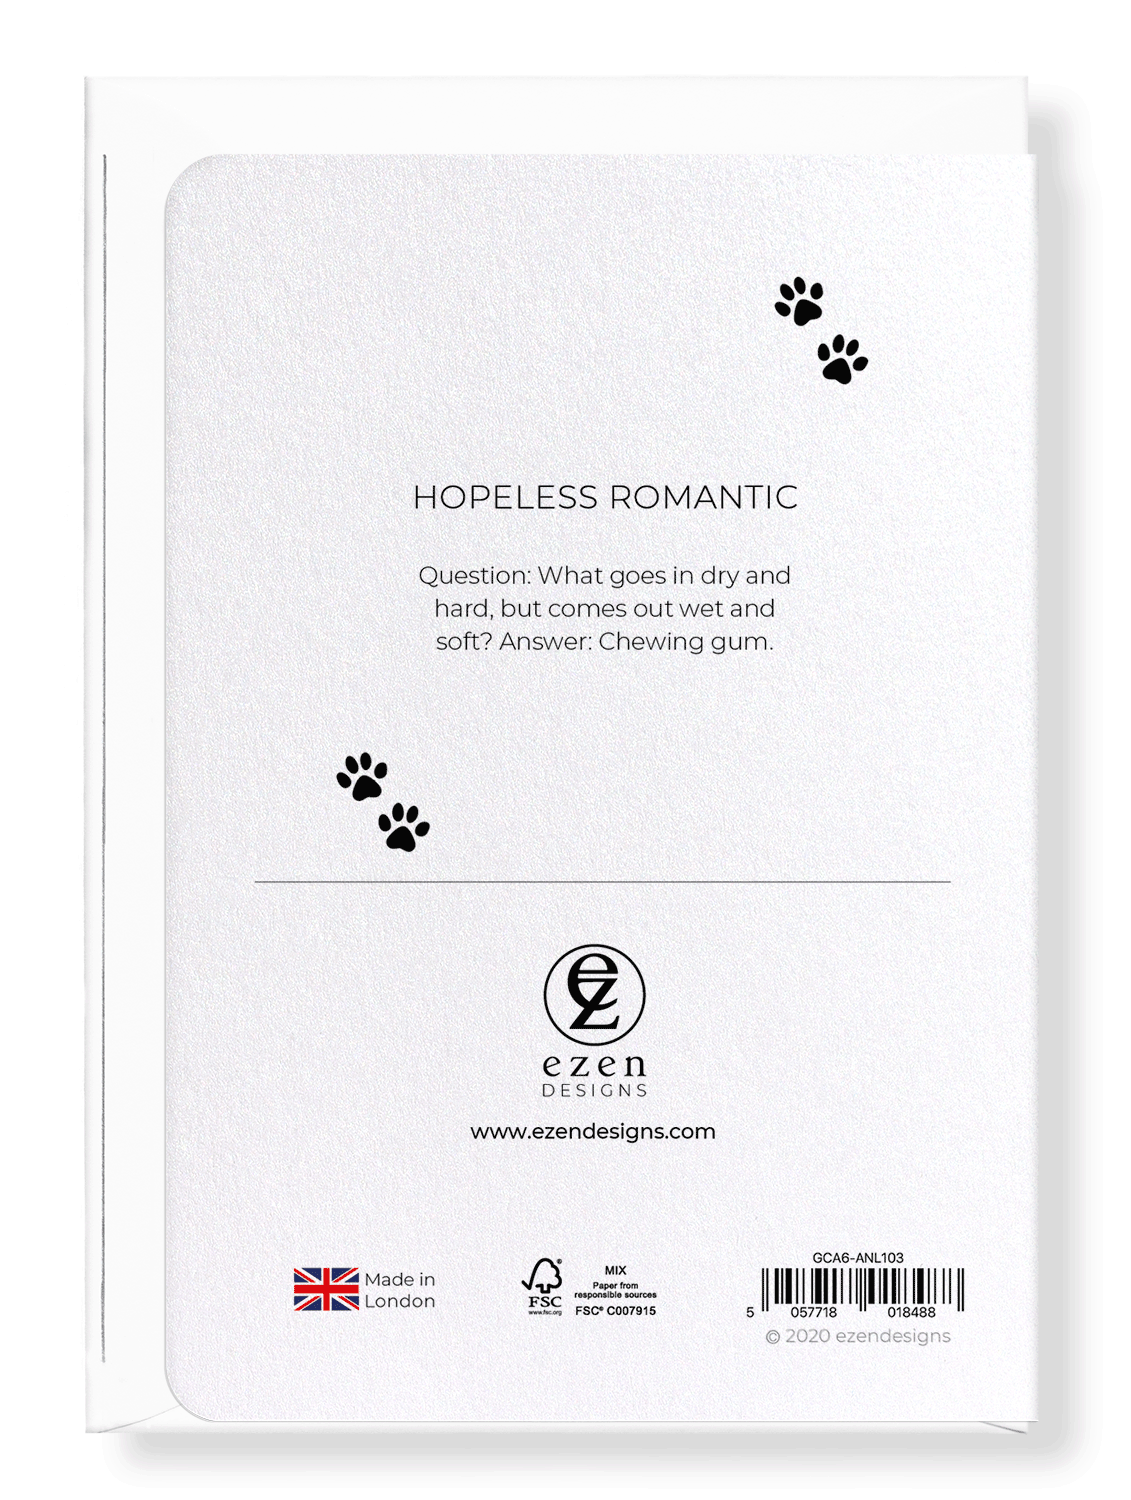 Ezen Designs - Hopeless romantic - Greeting Card - Back